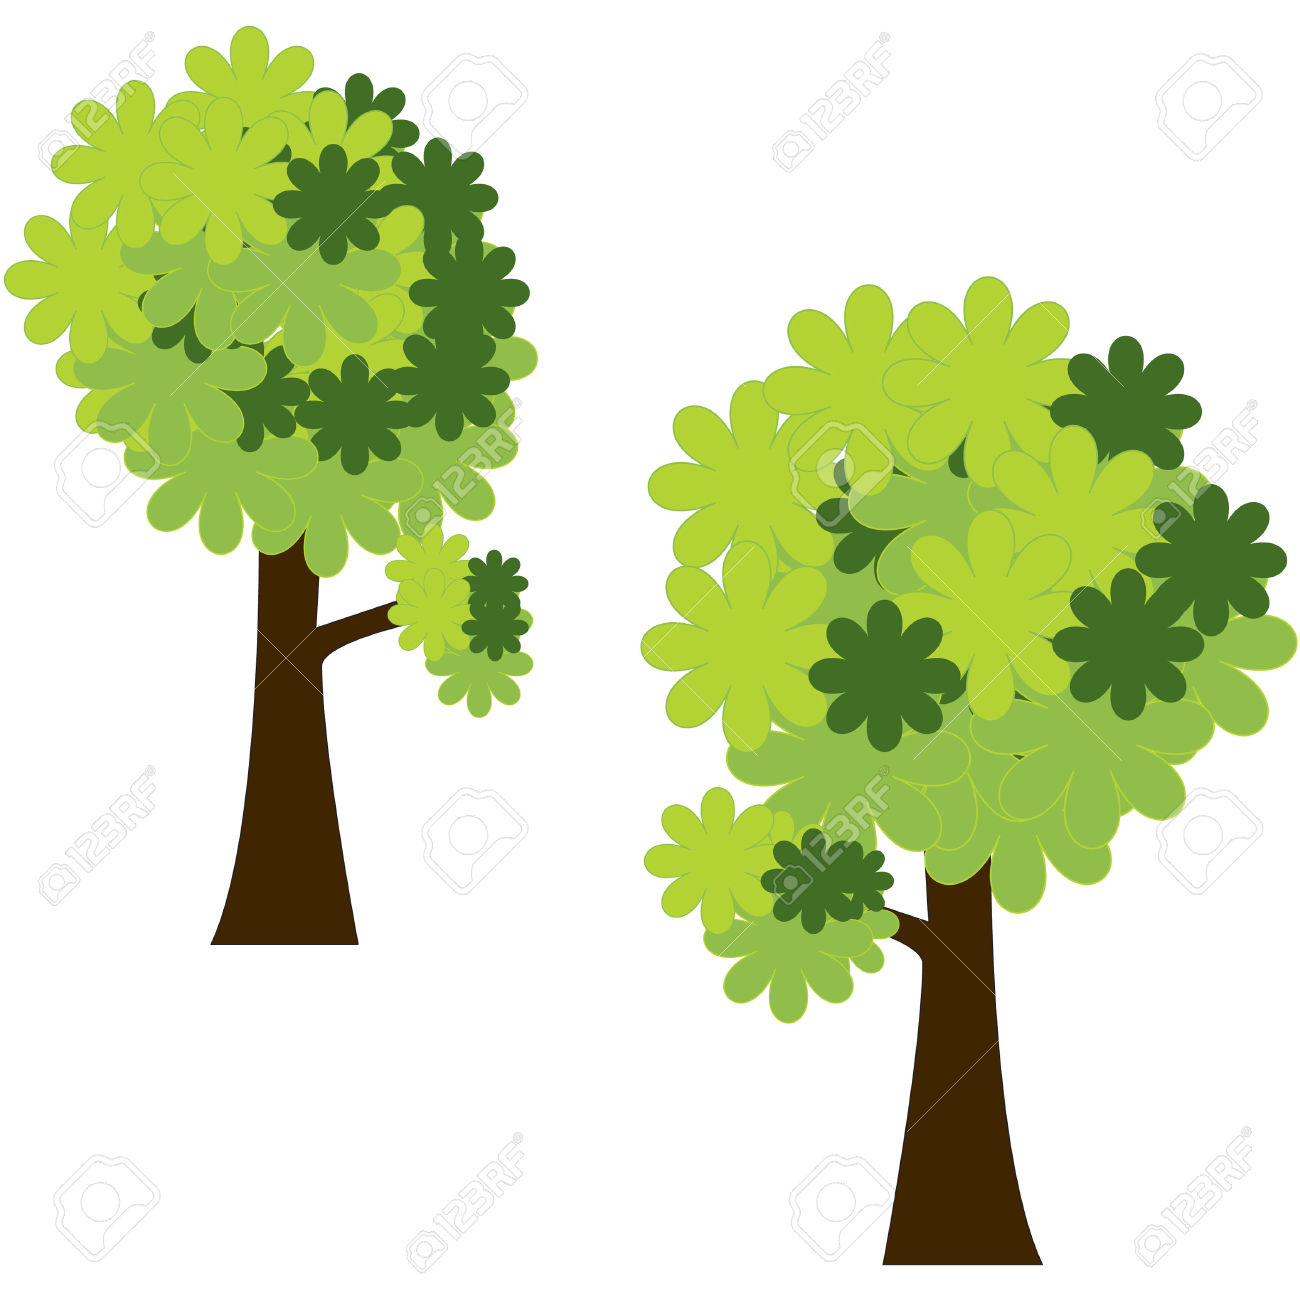 Tree clipart forest tree #5